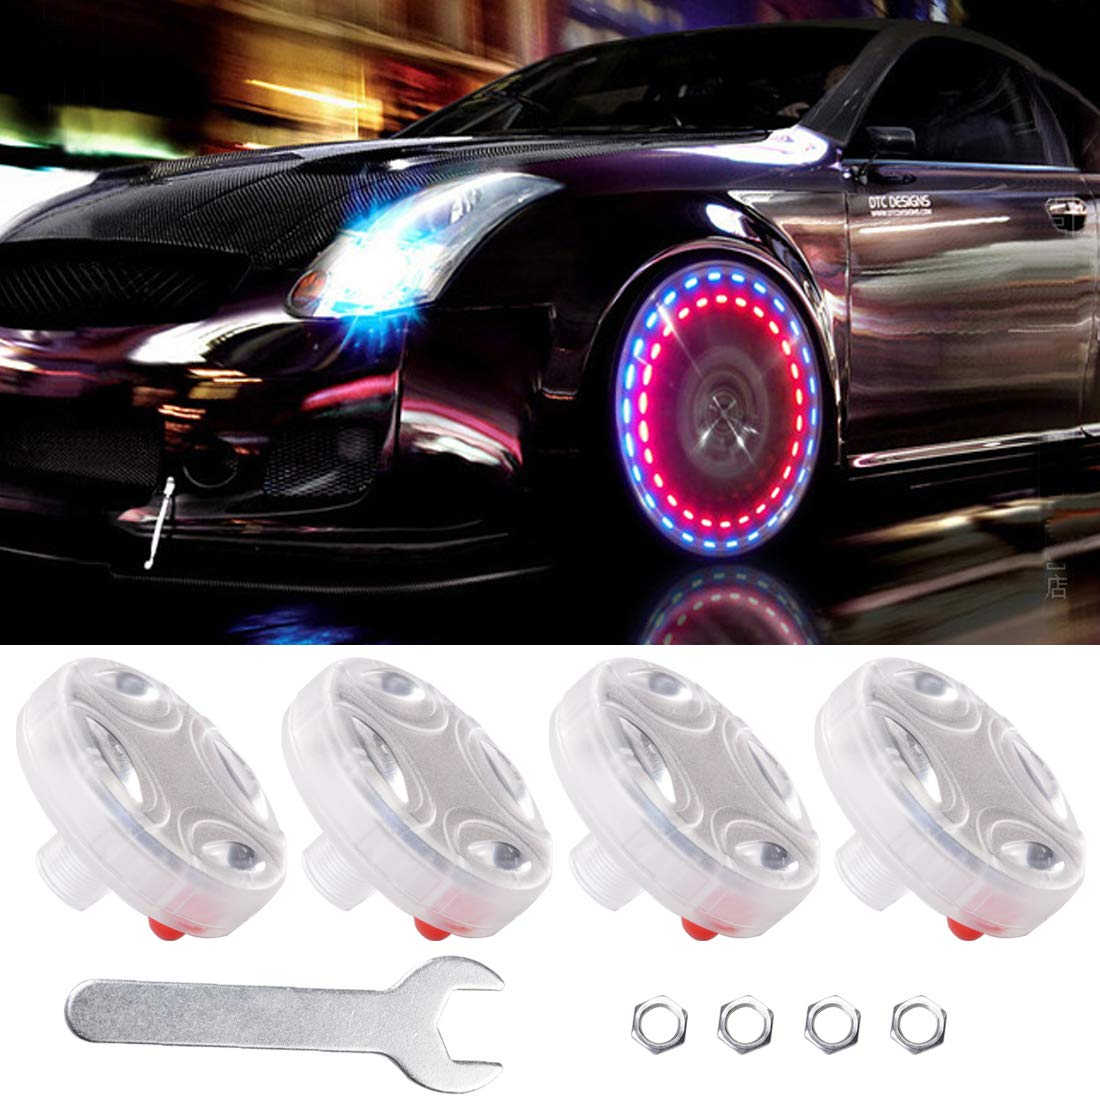 Ficbox Motion Sersor LED Tire Lights